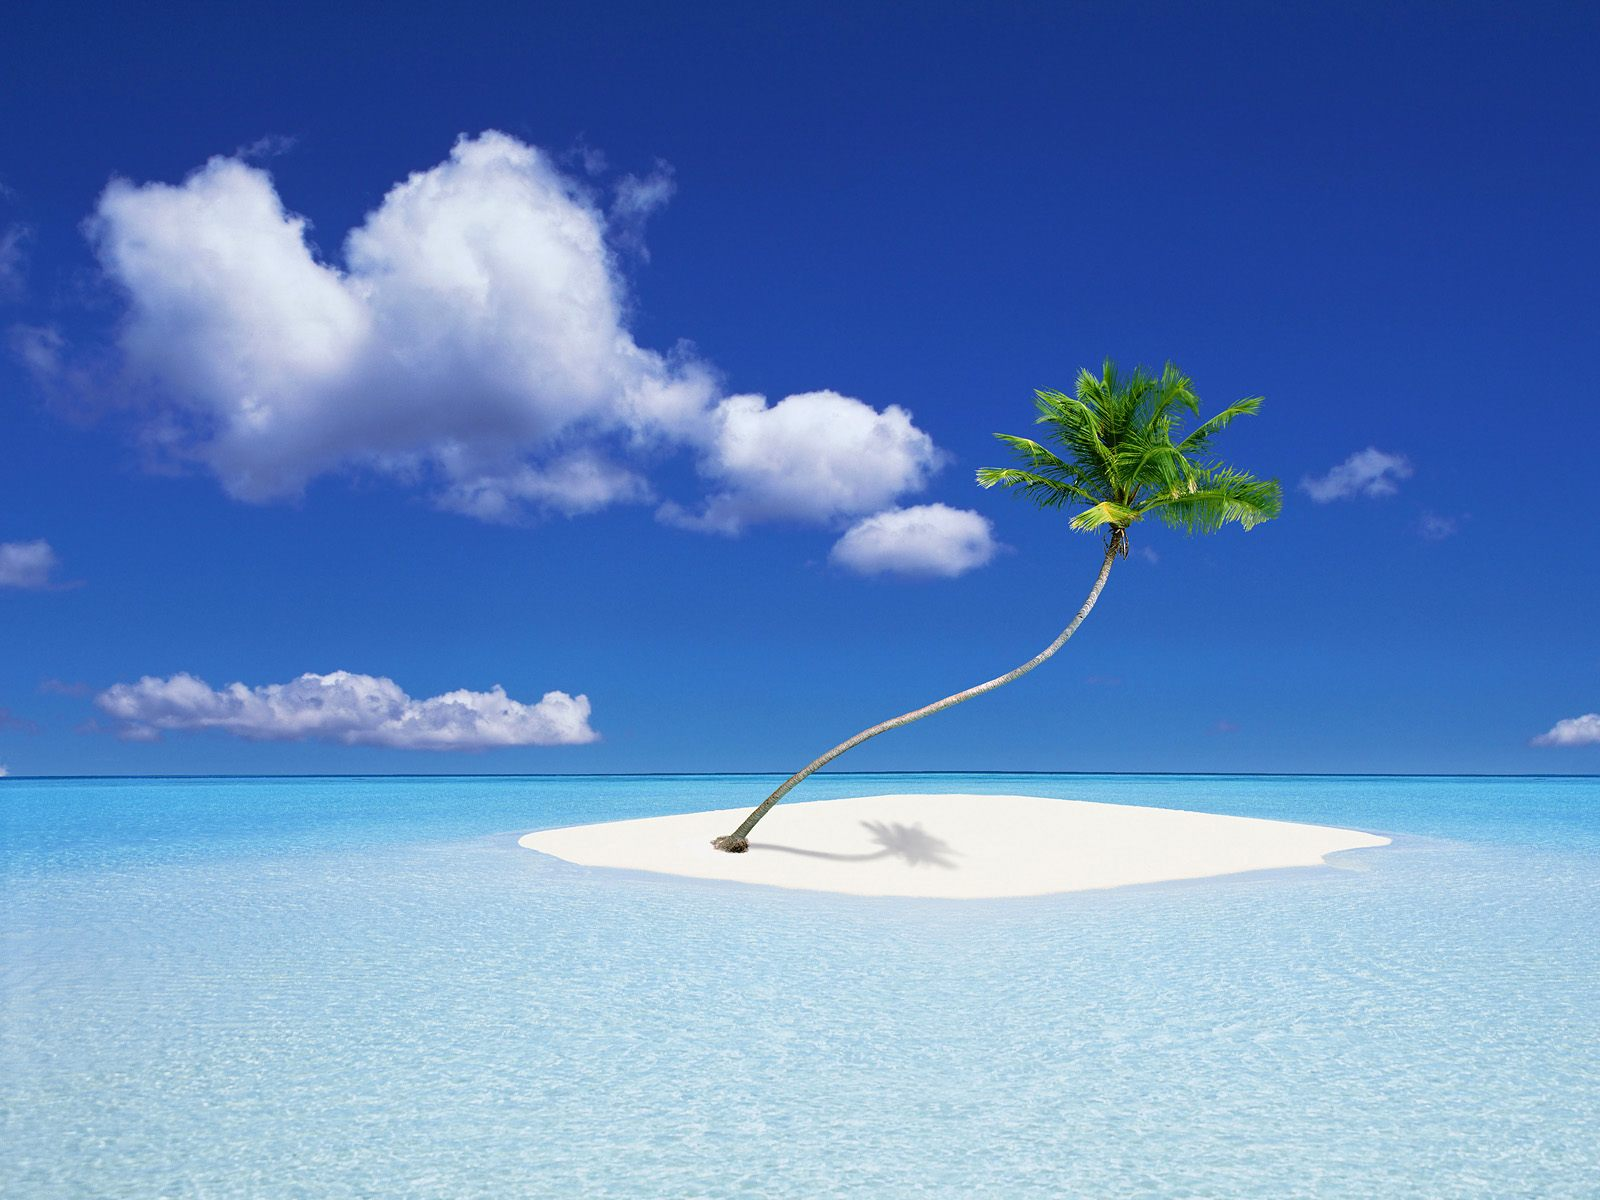 Island Holiday Wallpapers HD Wallpapers 1600x1200